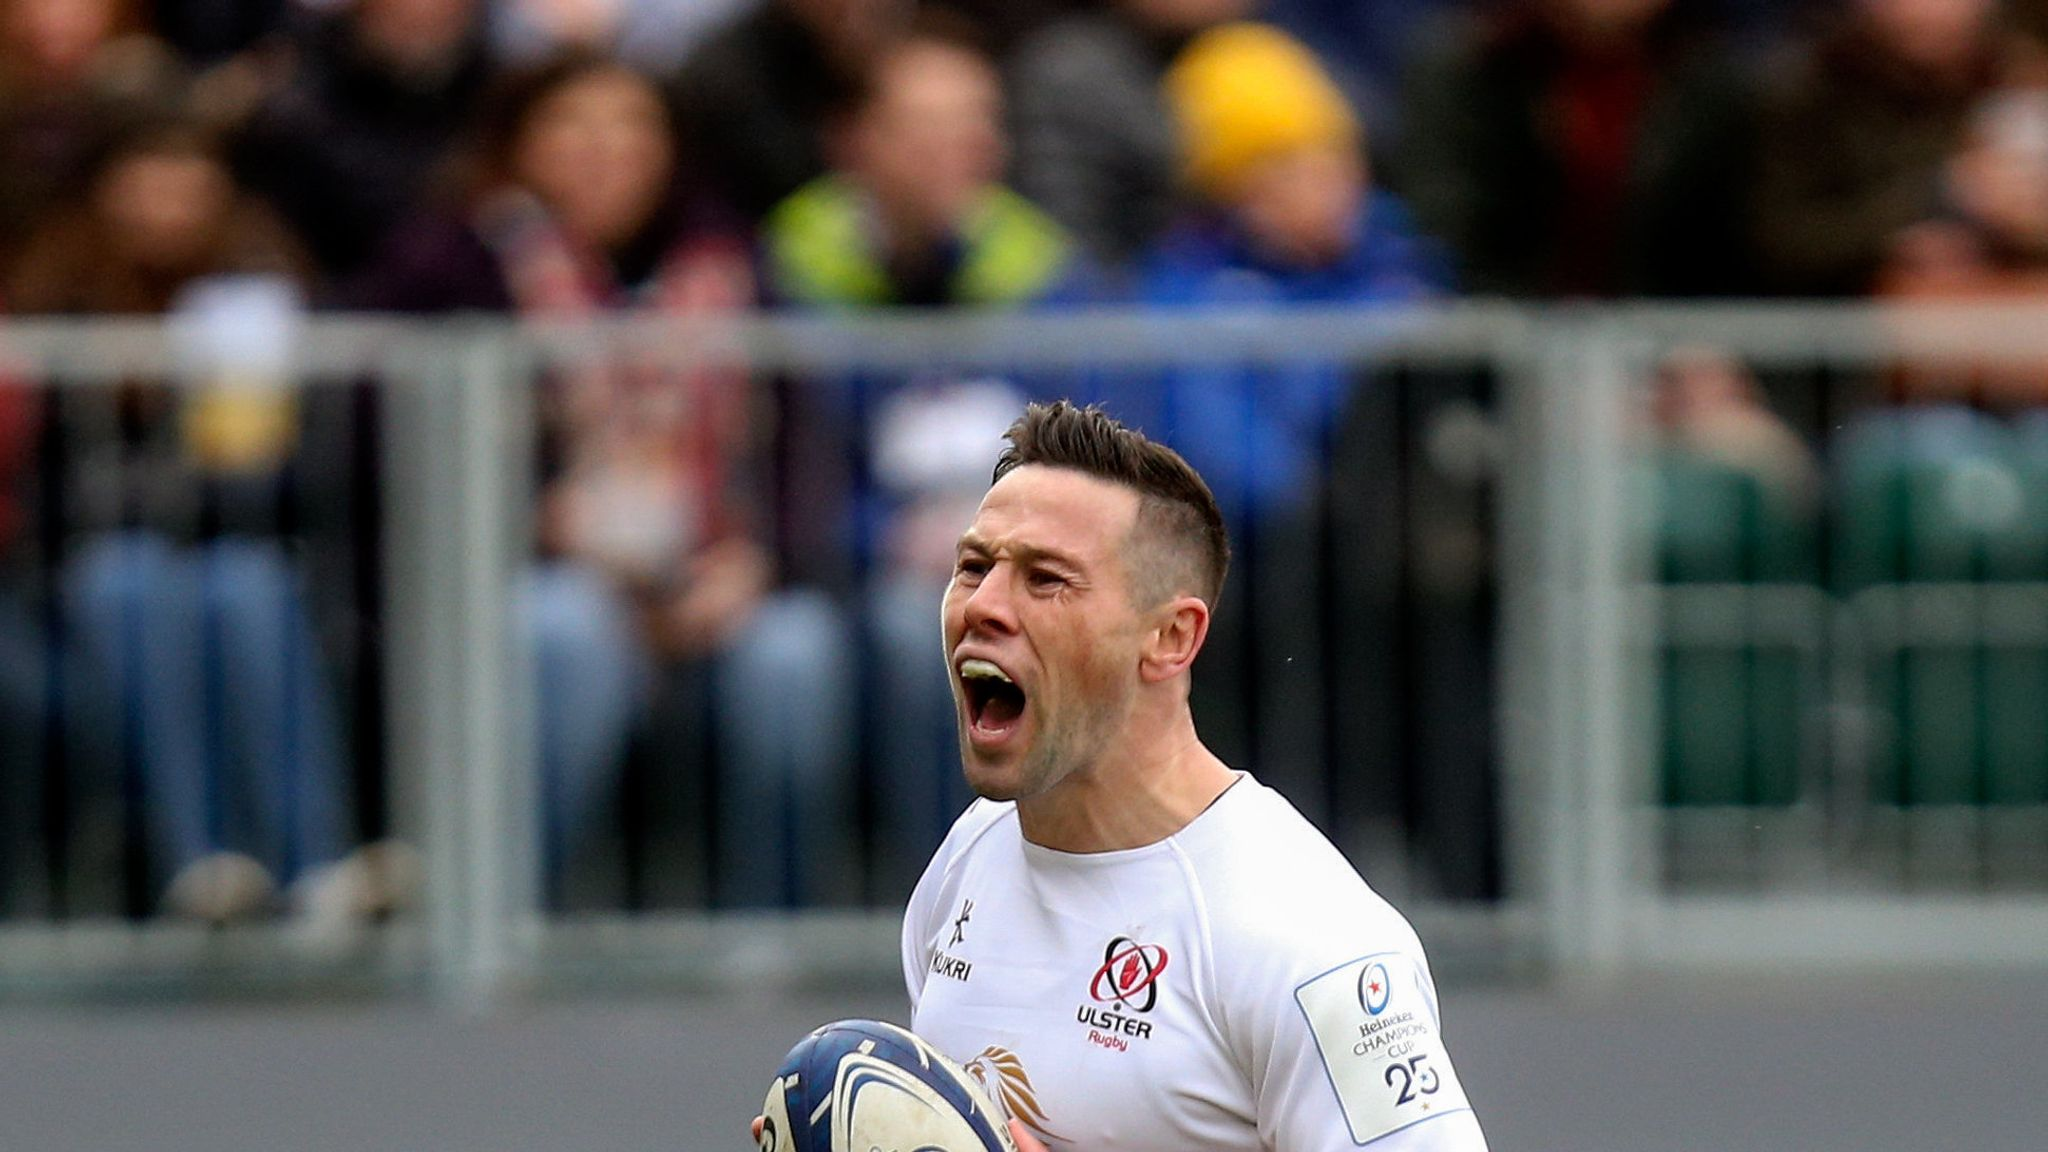 Ulster vs Clermont: Champions Cup Pool 3 LIVE!